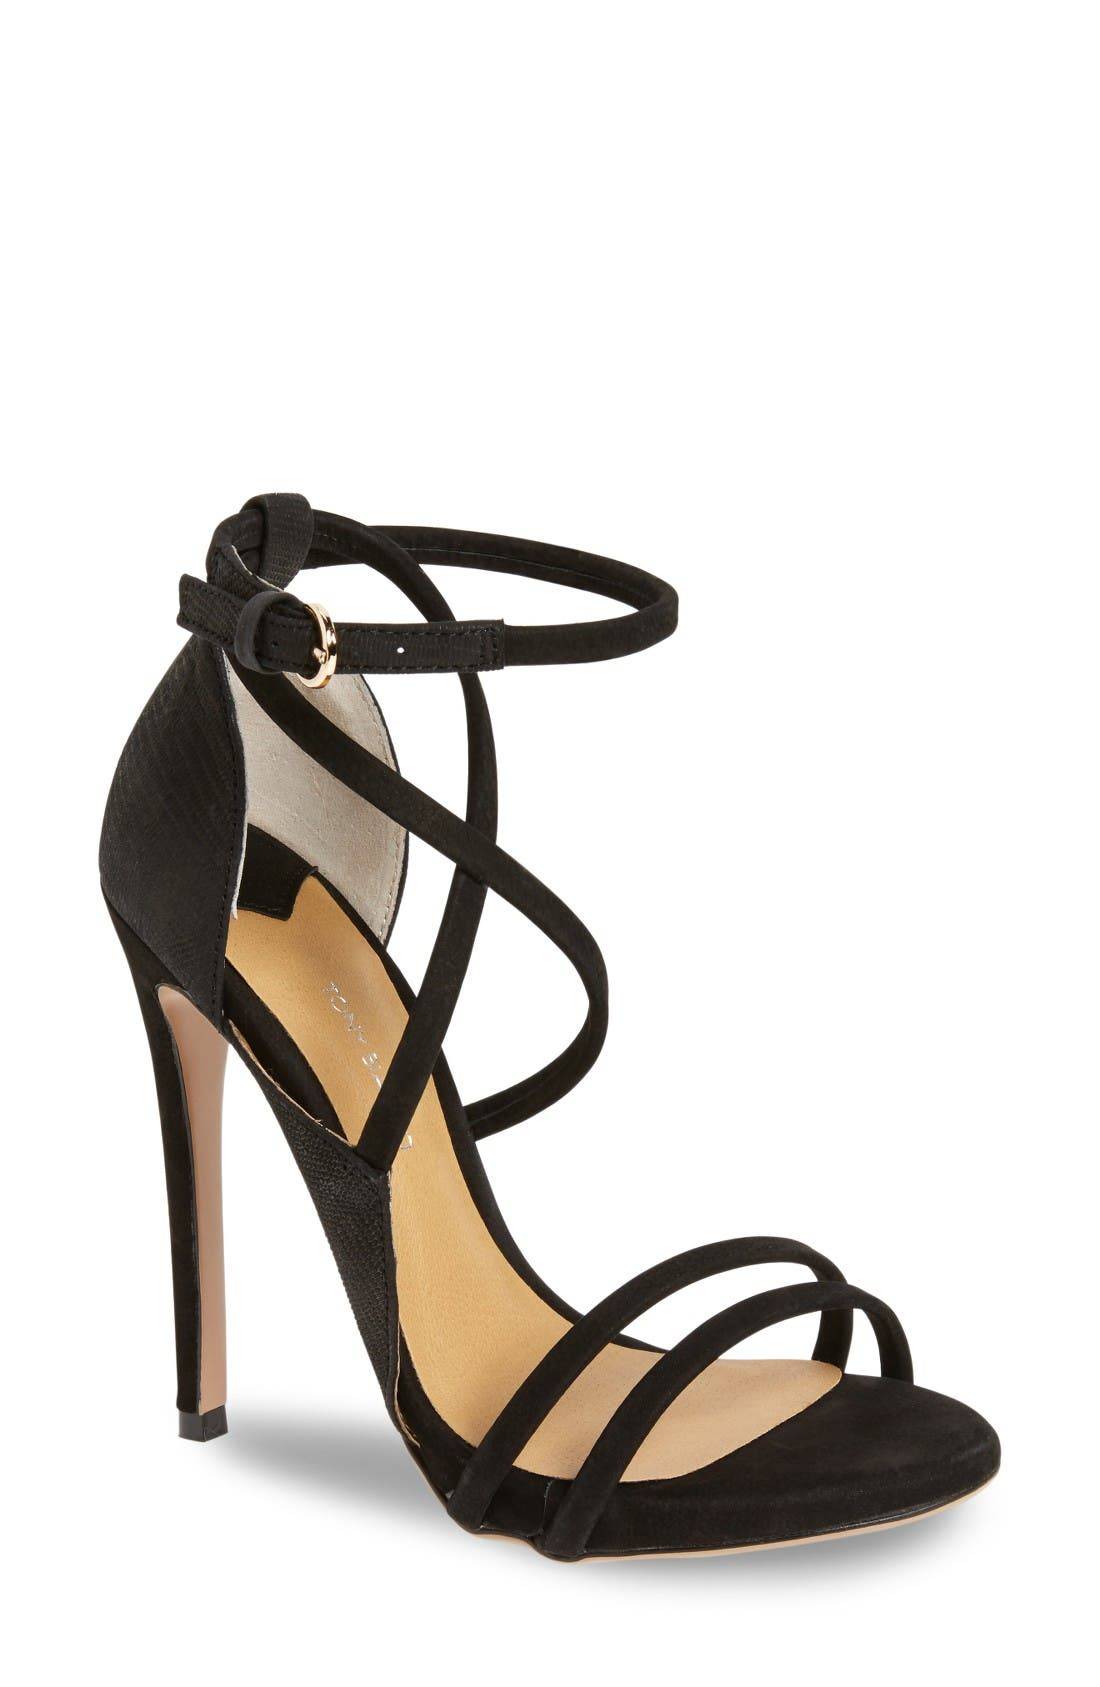 black strappy sandals | Nordstrom